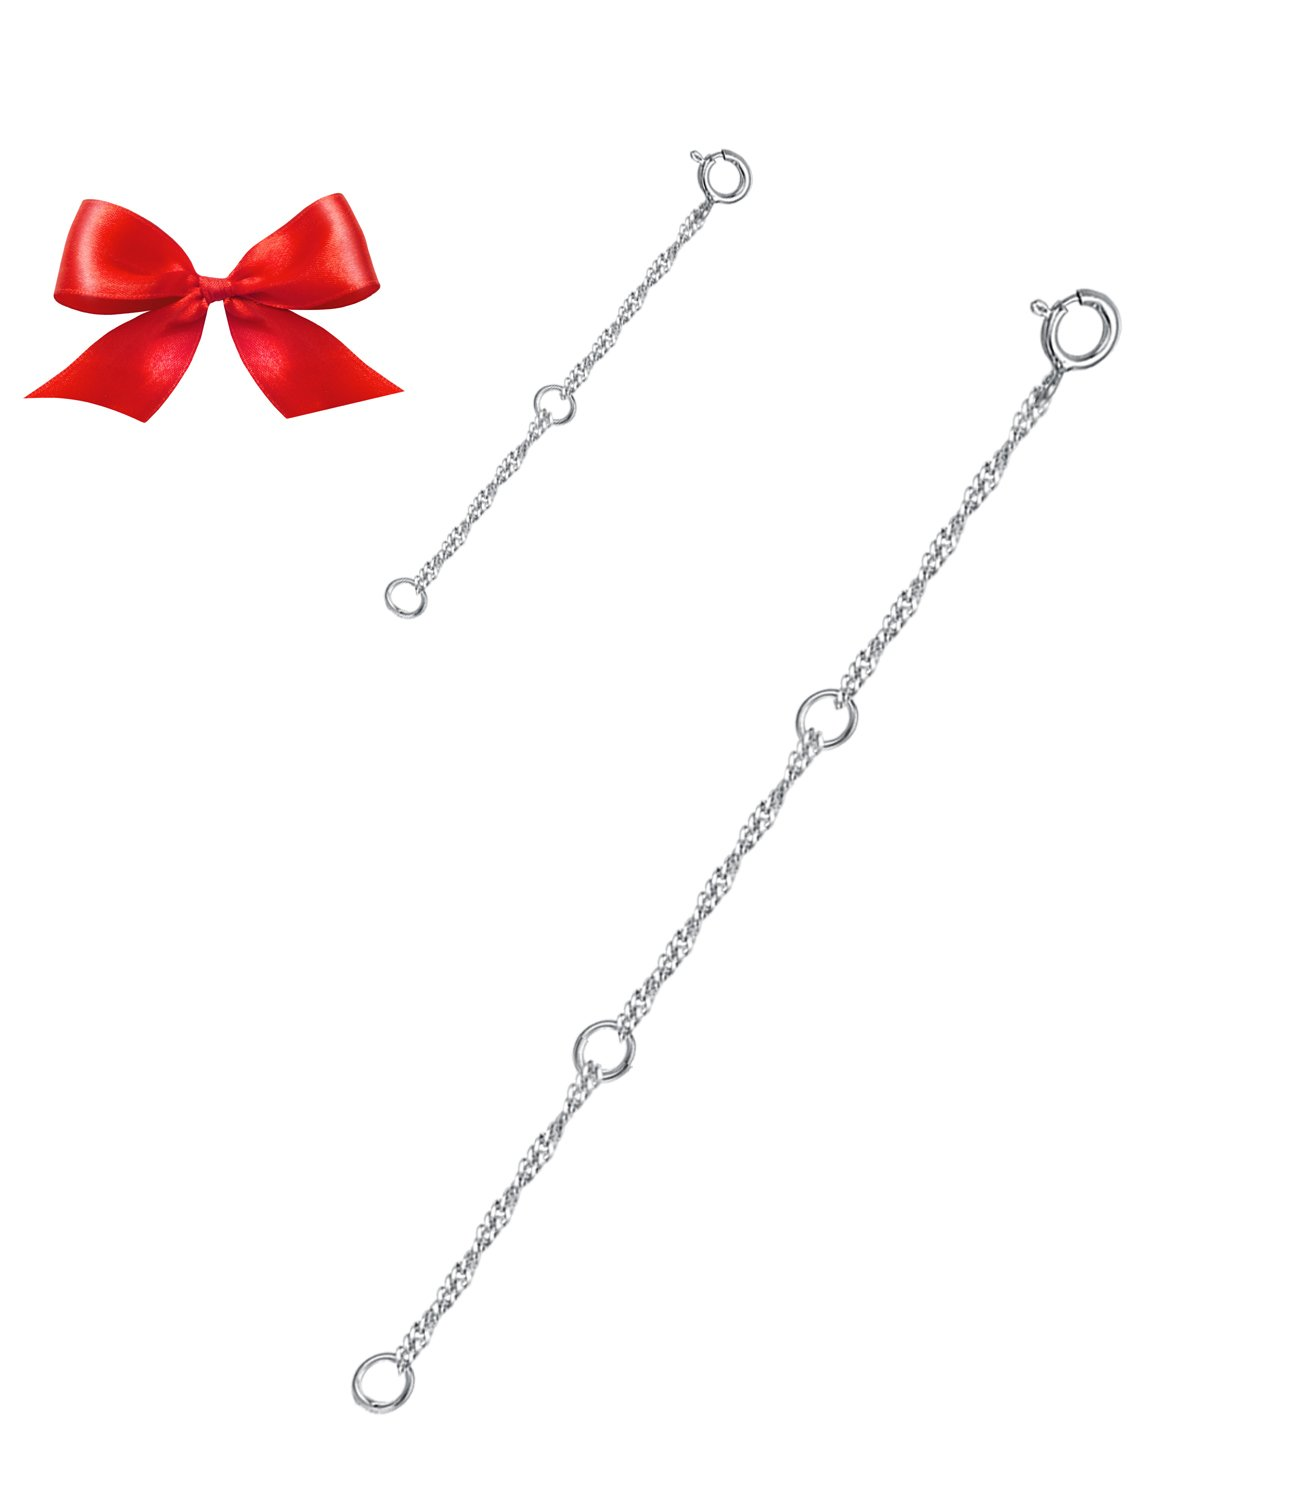 Elda& Co Sterling Silver Necklace Bracelet Extender Chain Set include 2pcs Different Length:4 and 2 CHTS002-4